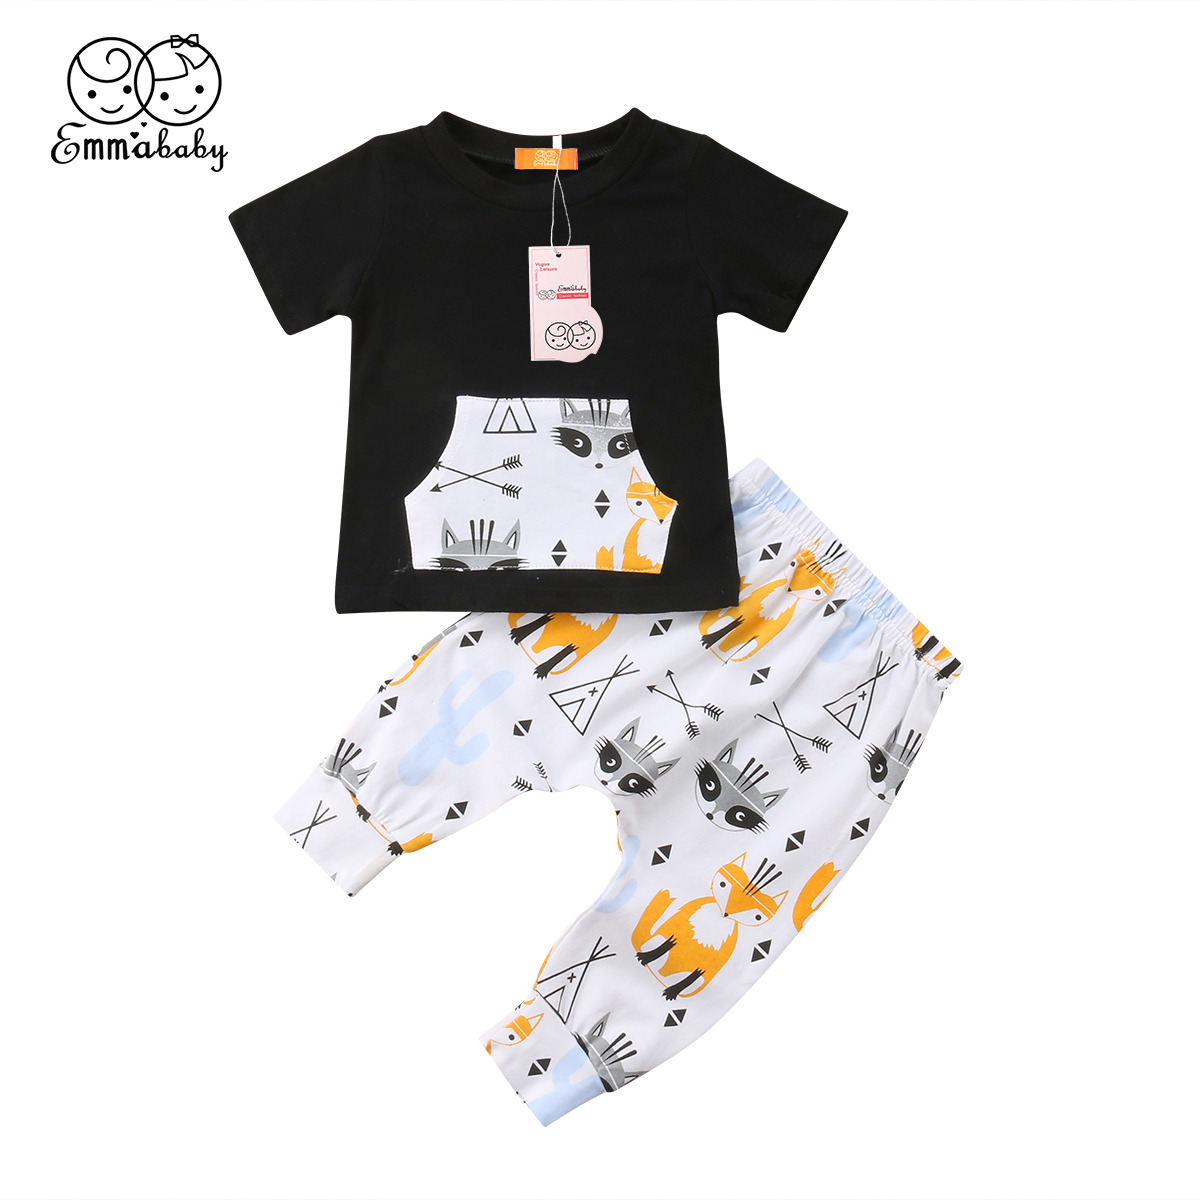 Casual 2PCS Infant Toddler Baby Boy Outfit Clothes Set Shorts Sleeve T-shirts +Printed Pants Cotton Print Clothes Sets